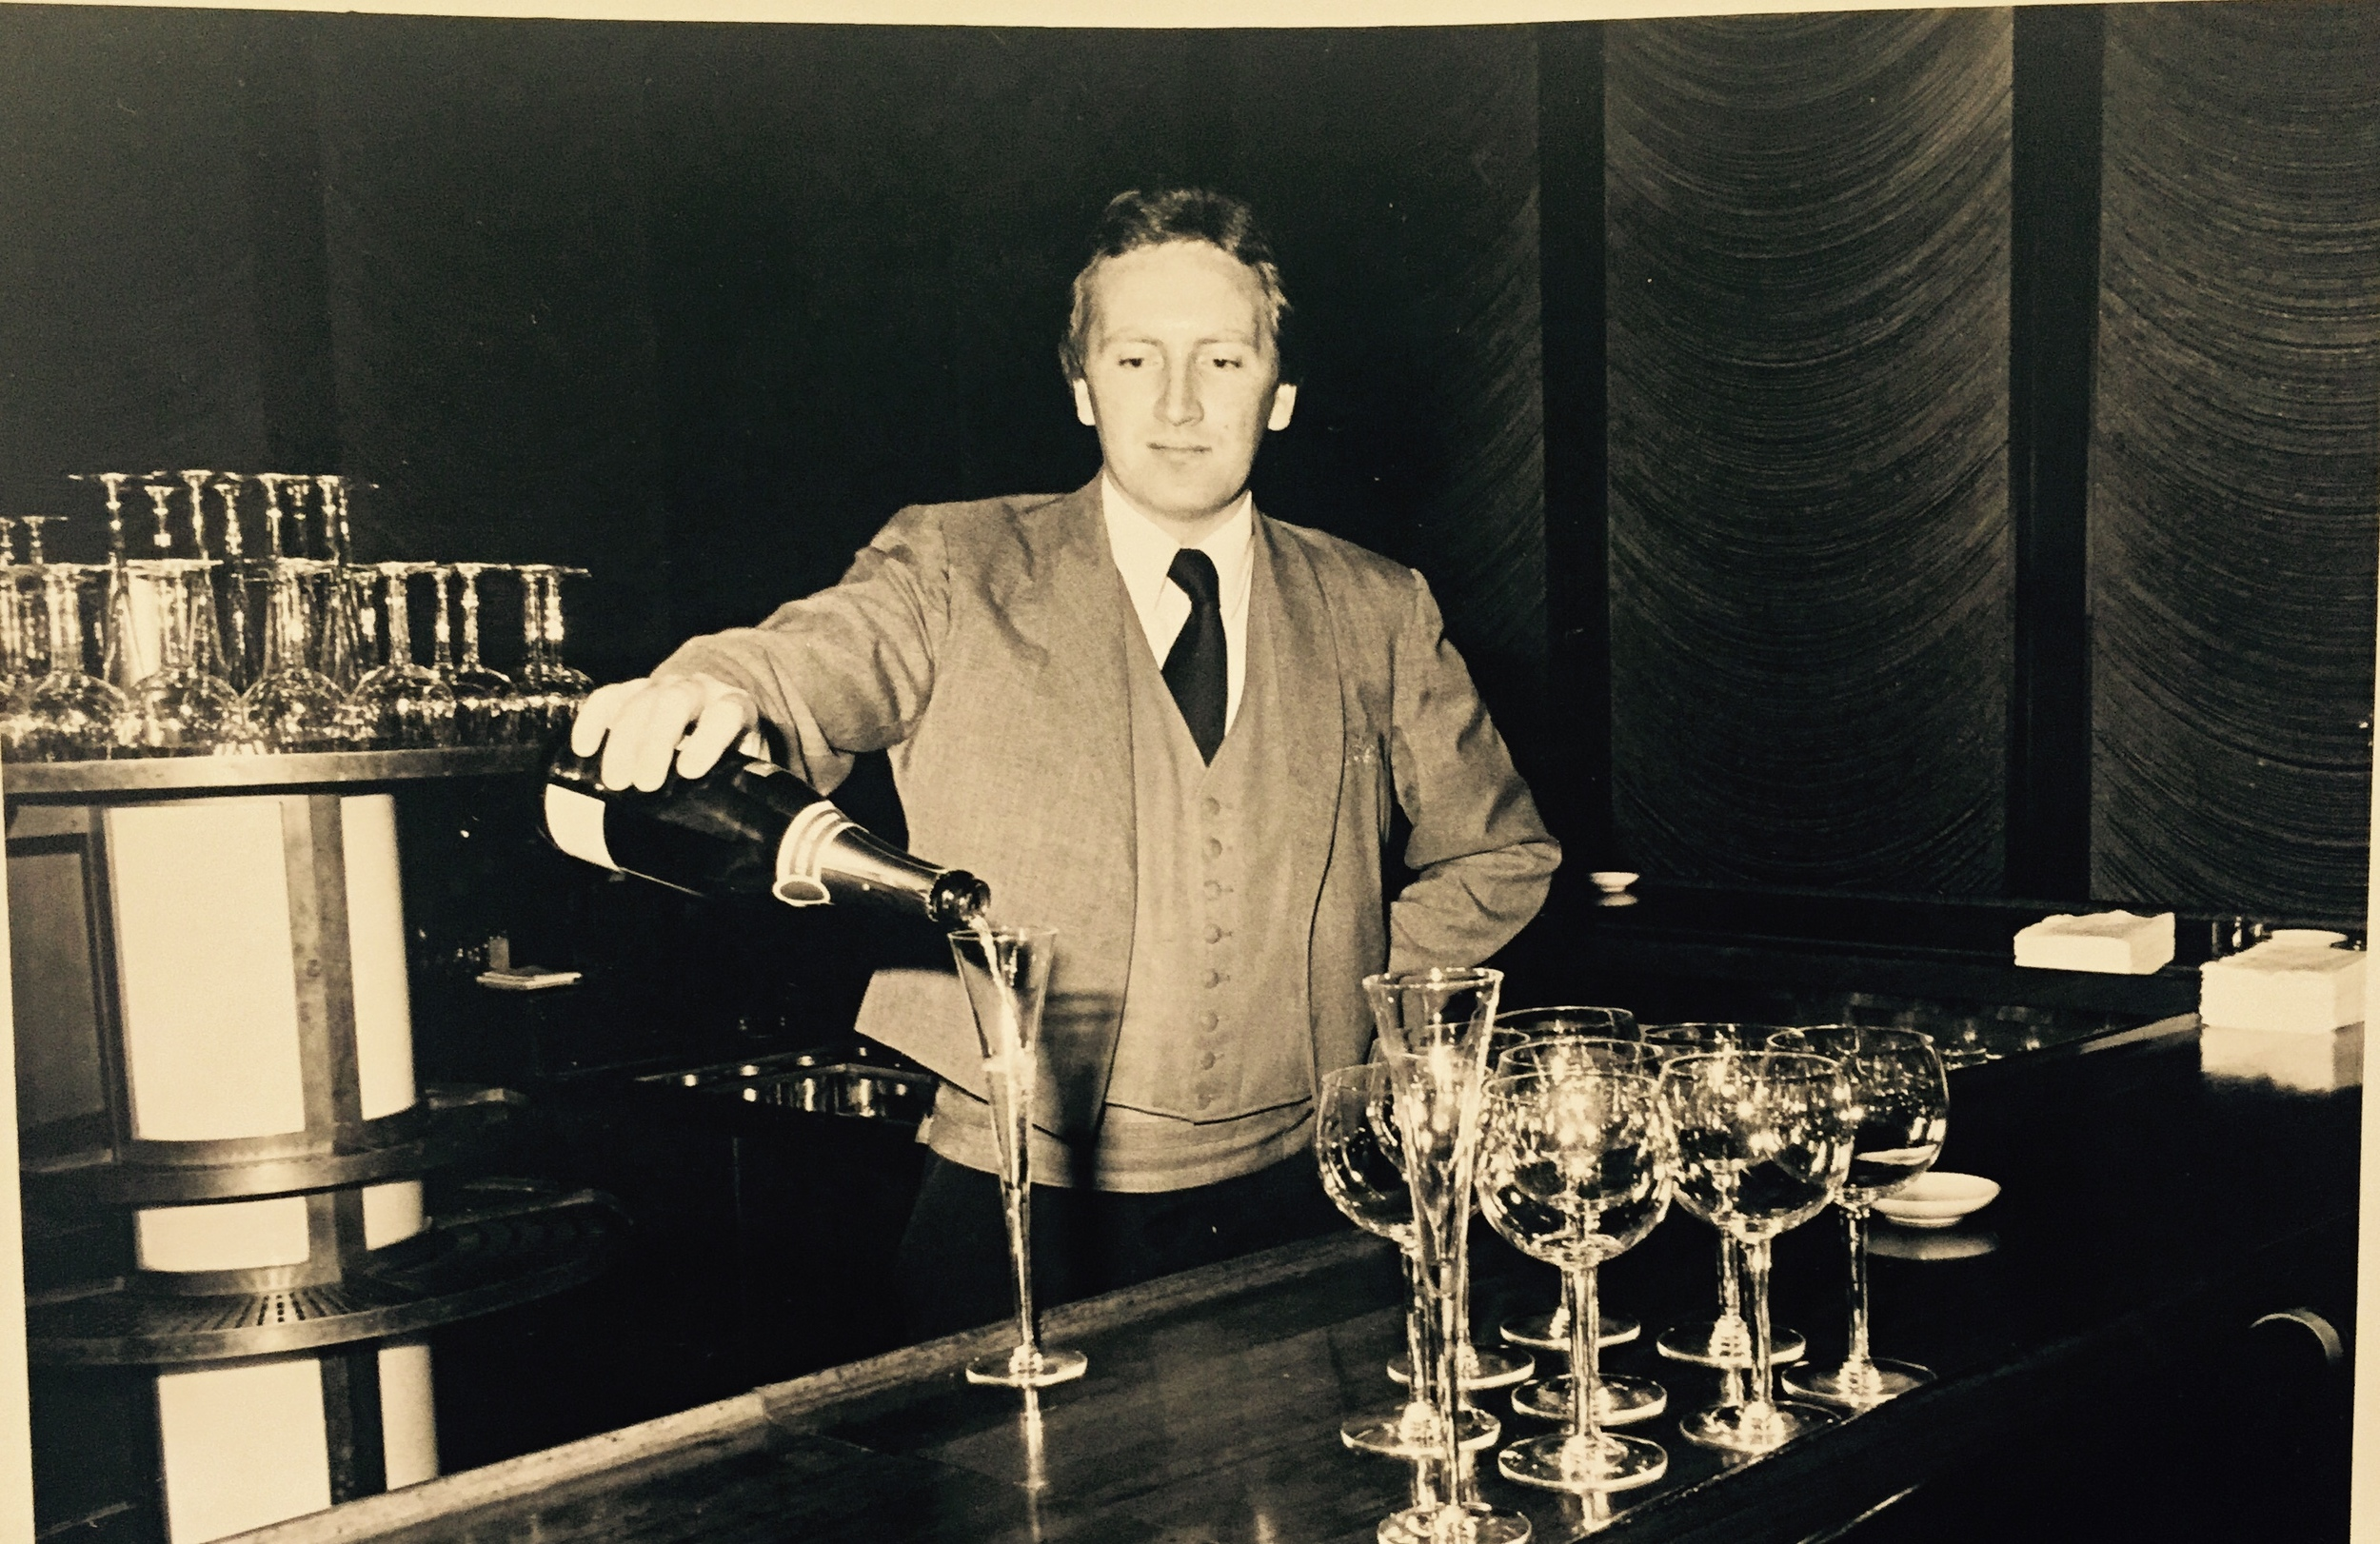 Lenny behind the bar at the Four Seasons Restaurant in New York